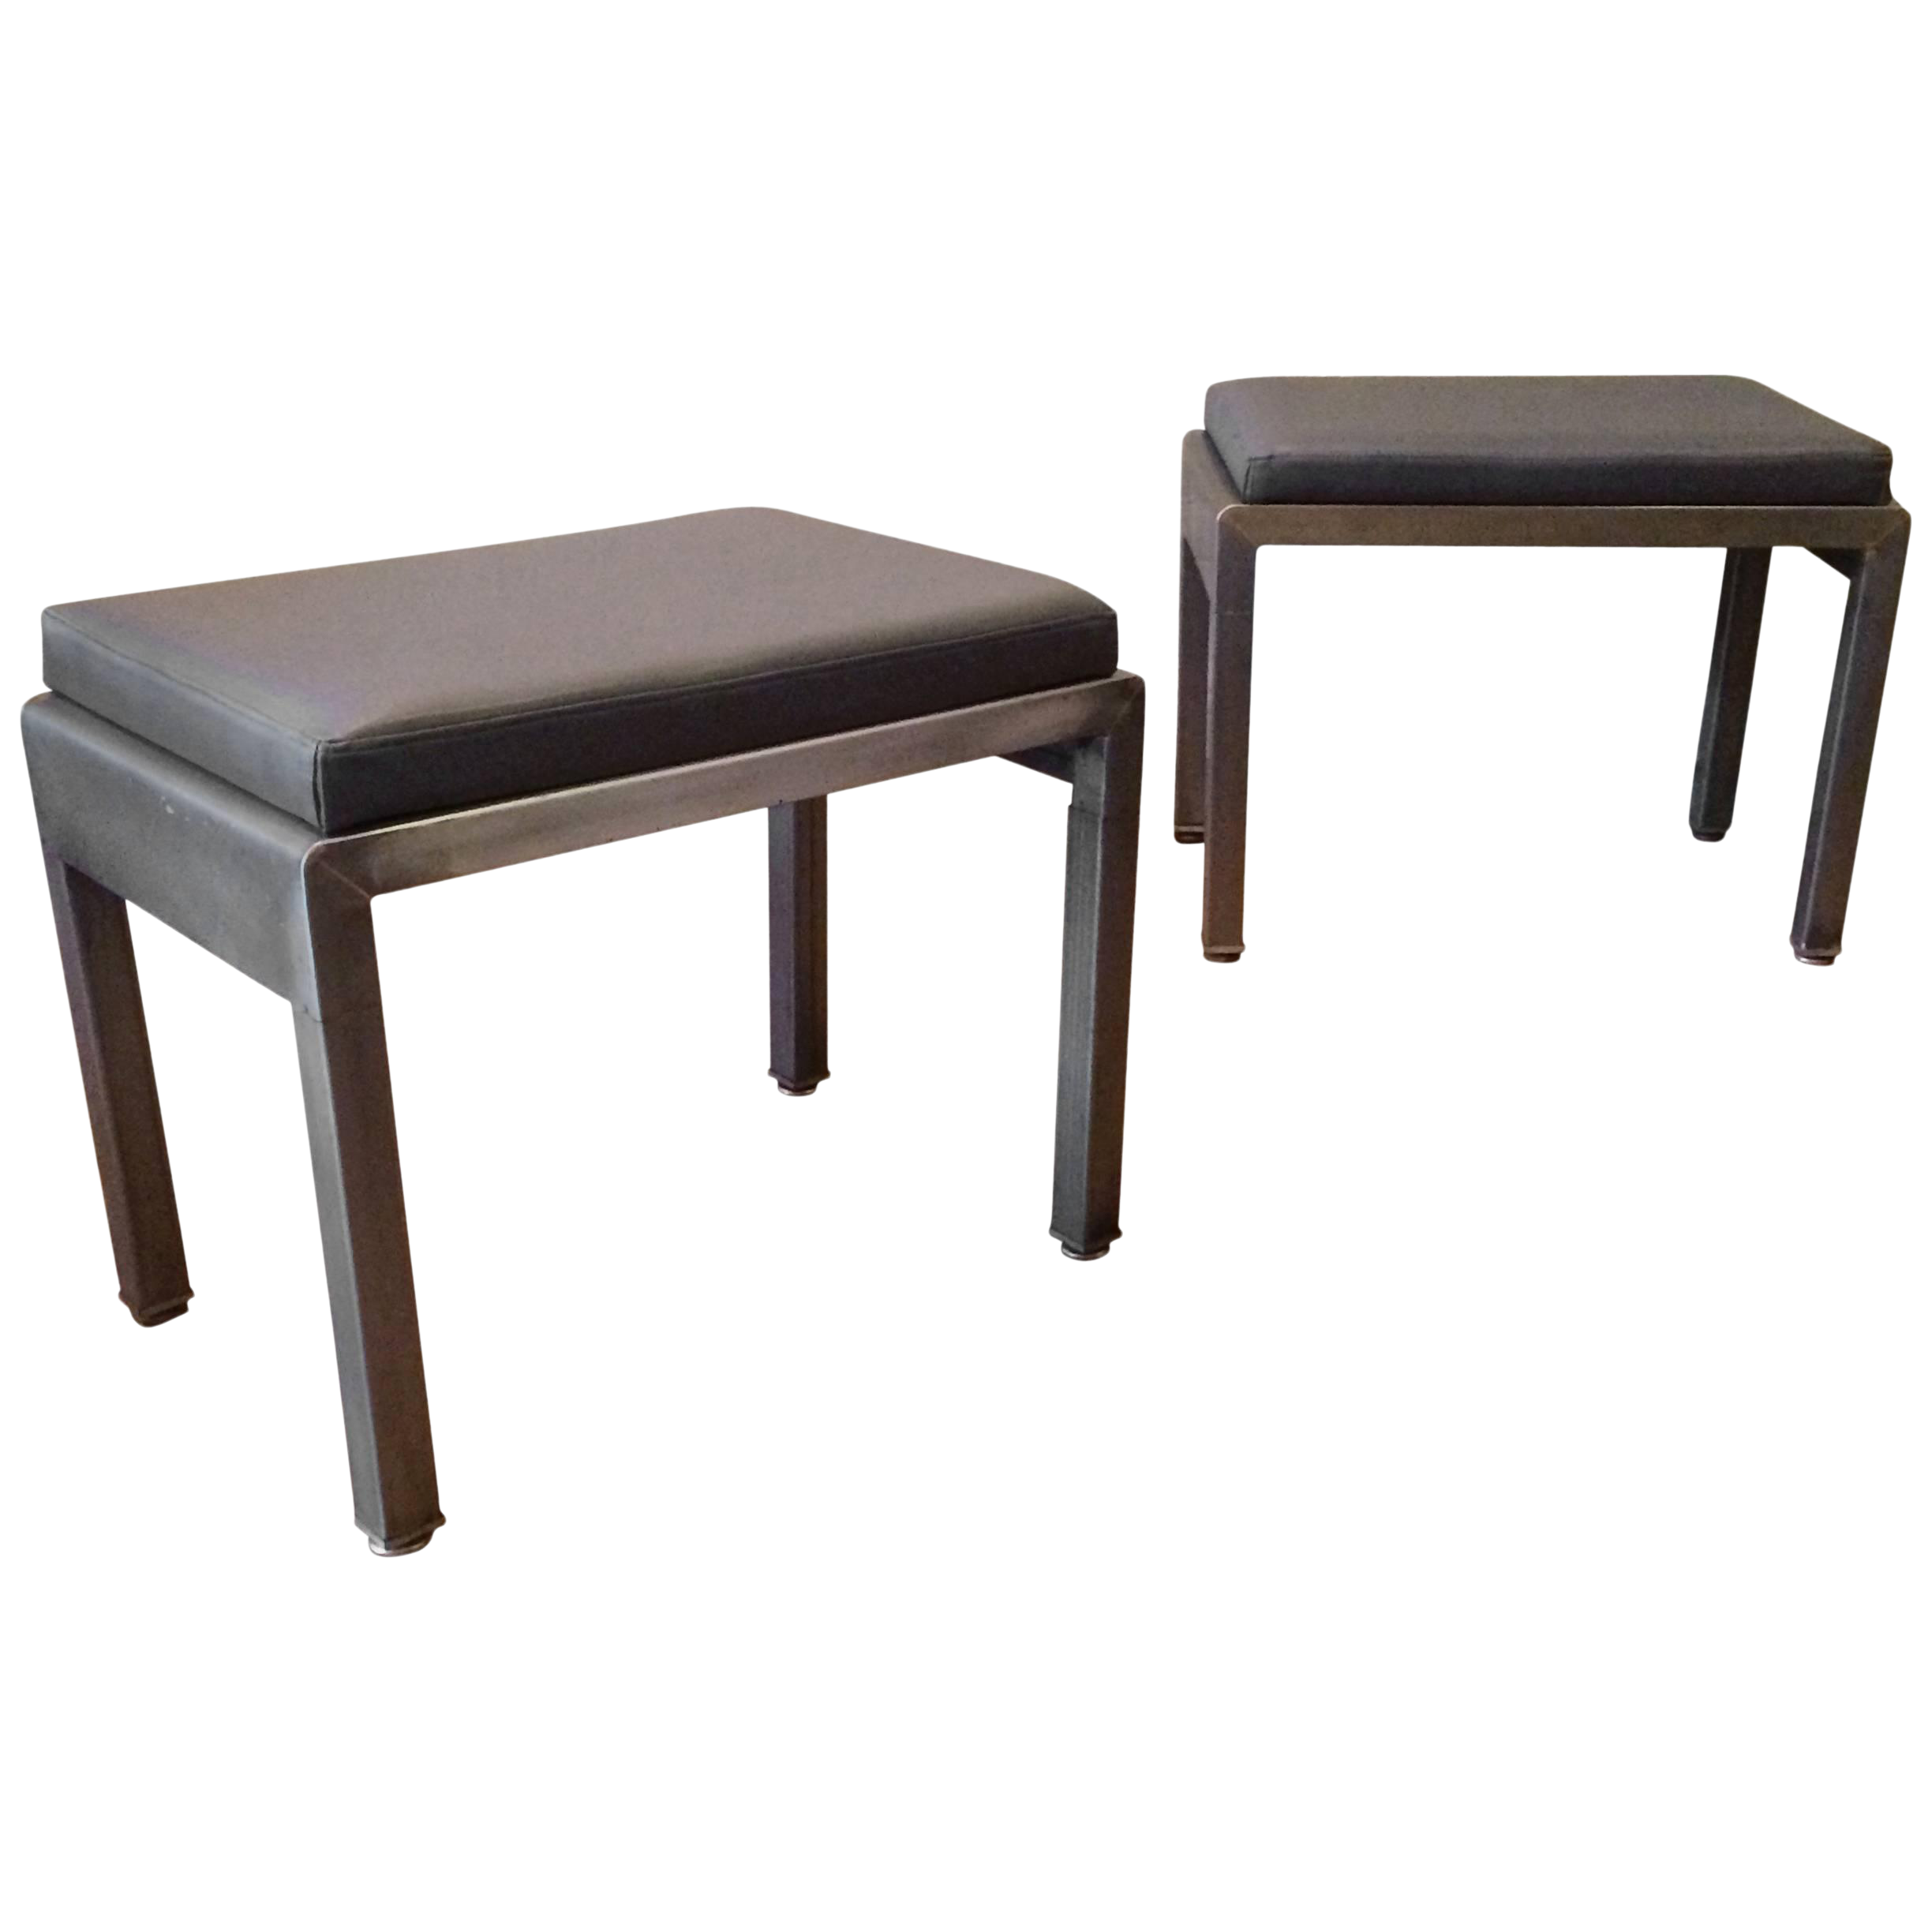 Miraculous 1930S Vintage Norman Bel Geddes For Simmons Art Deco Ottomans A Pair Caraccident5 Cool Chair Designs And Ideas Caraccident5Info